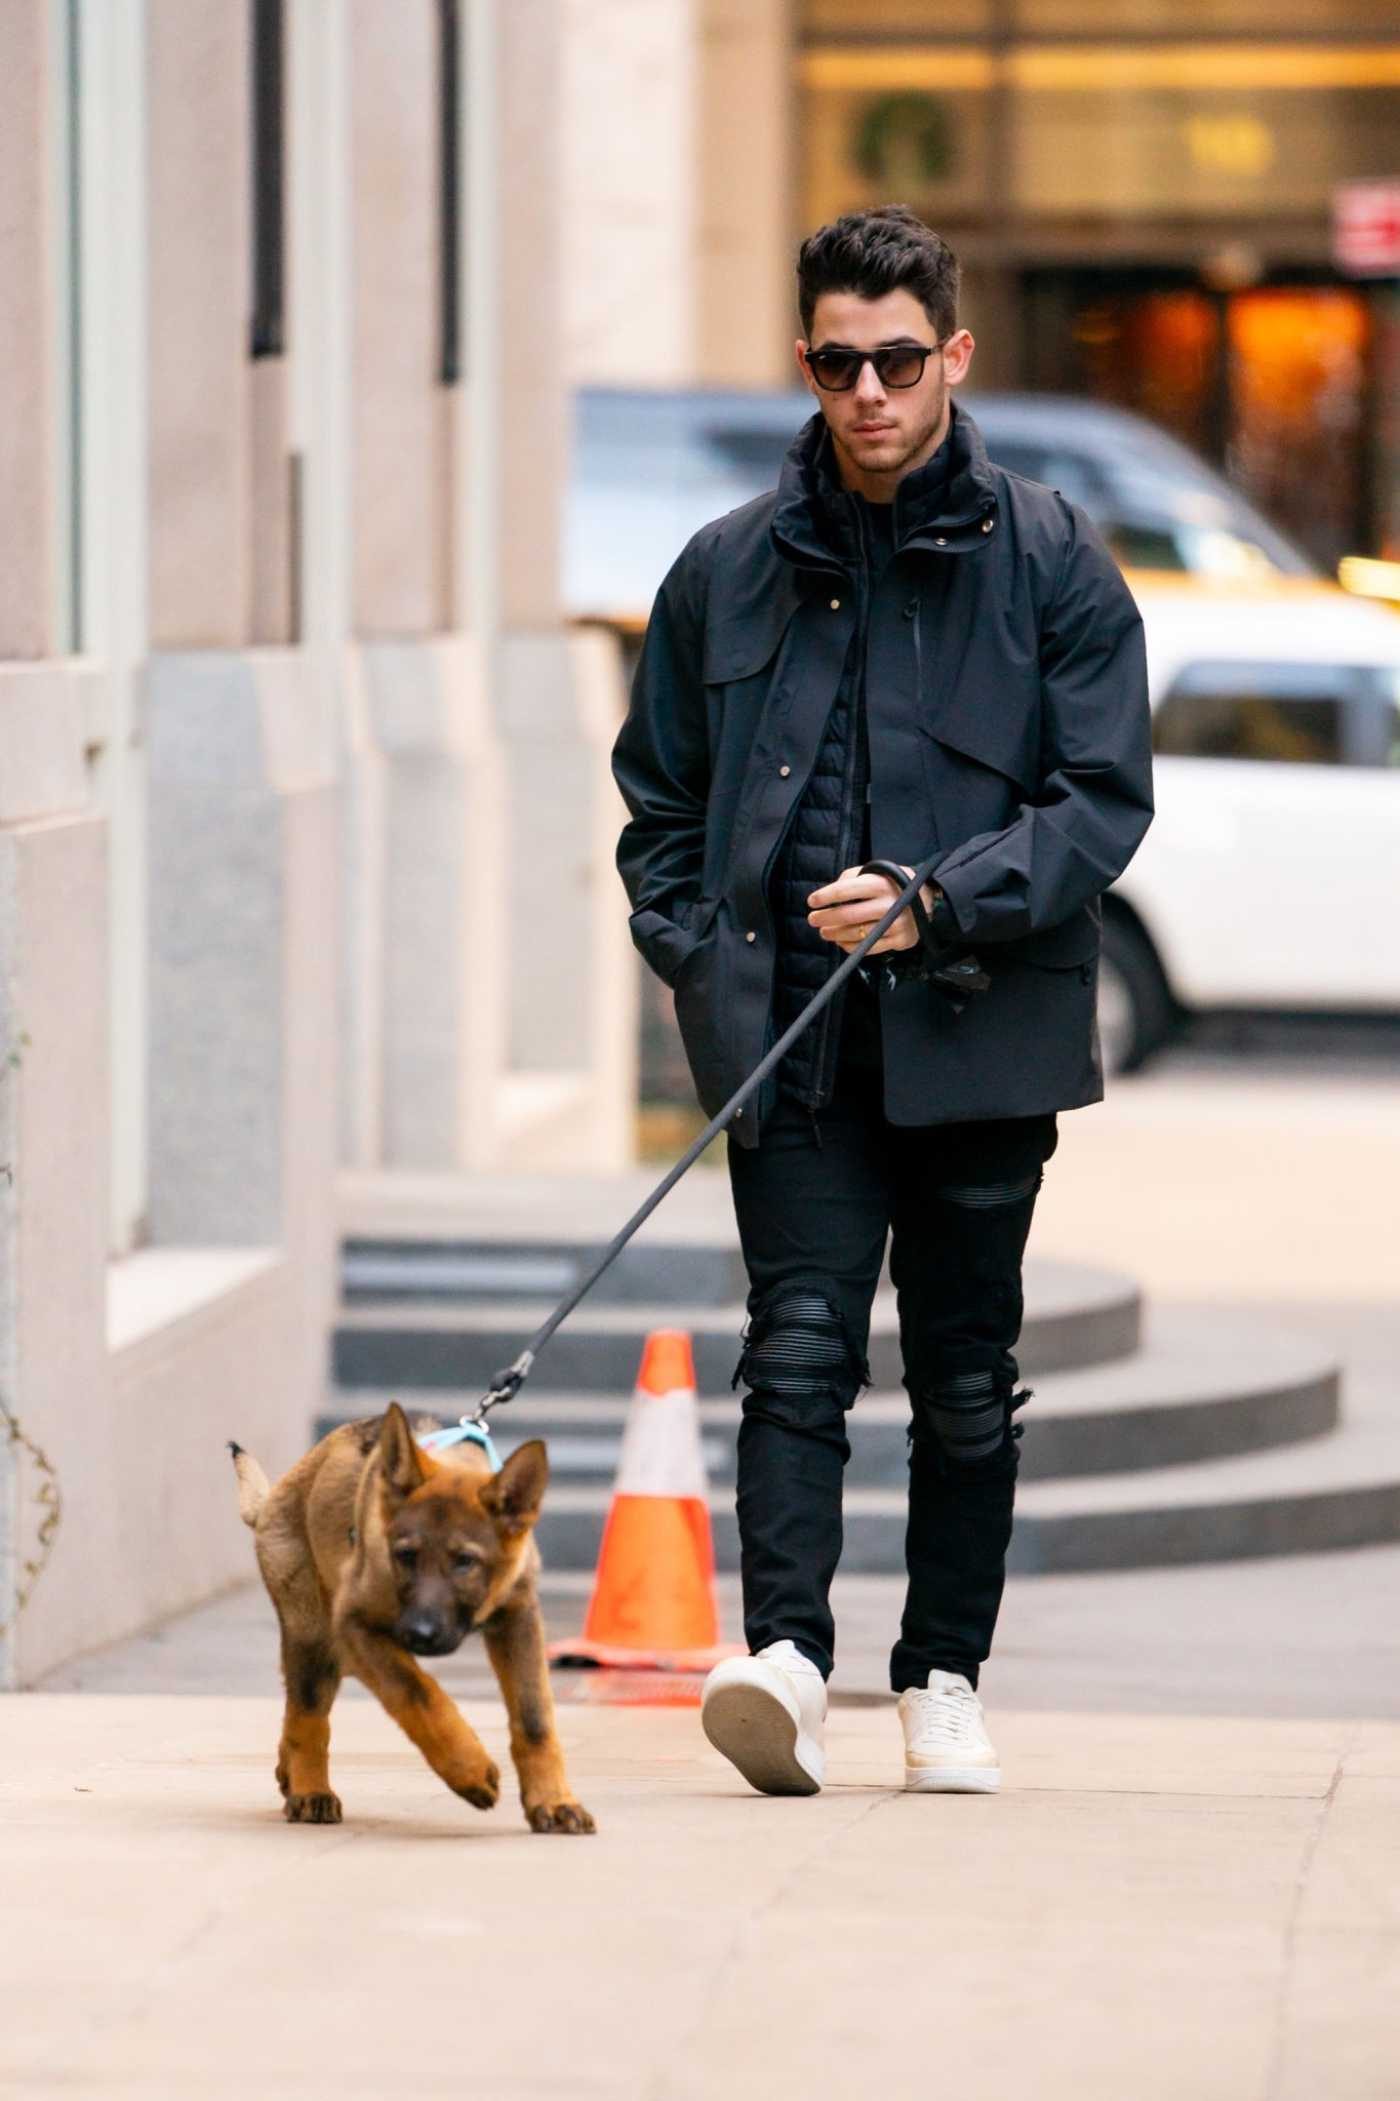 Nick Jonas in a Black Jacket Walks His Dog in New York City 11/30/2019